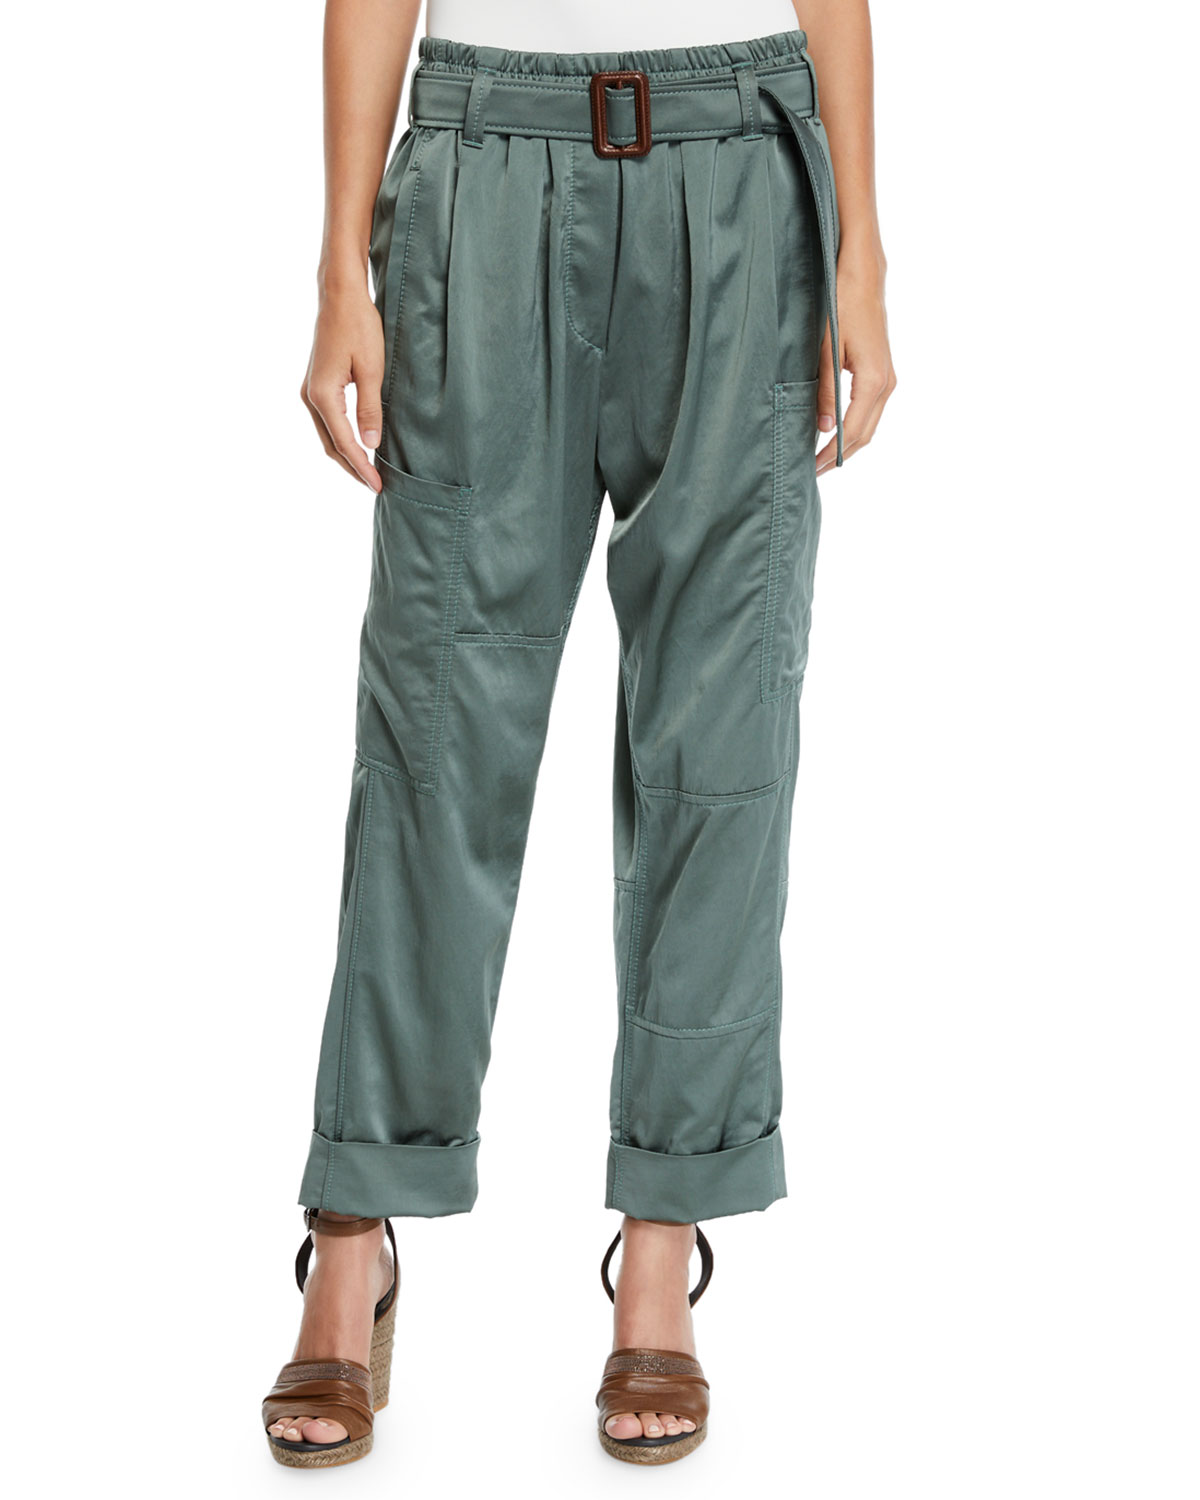 Straight-Leg Satin Pants W/ Wooden D-Ring Belt in Sage